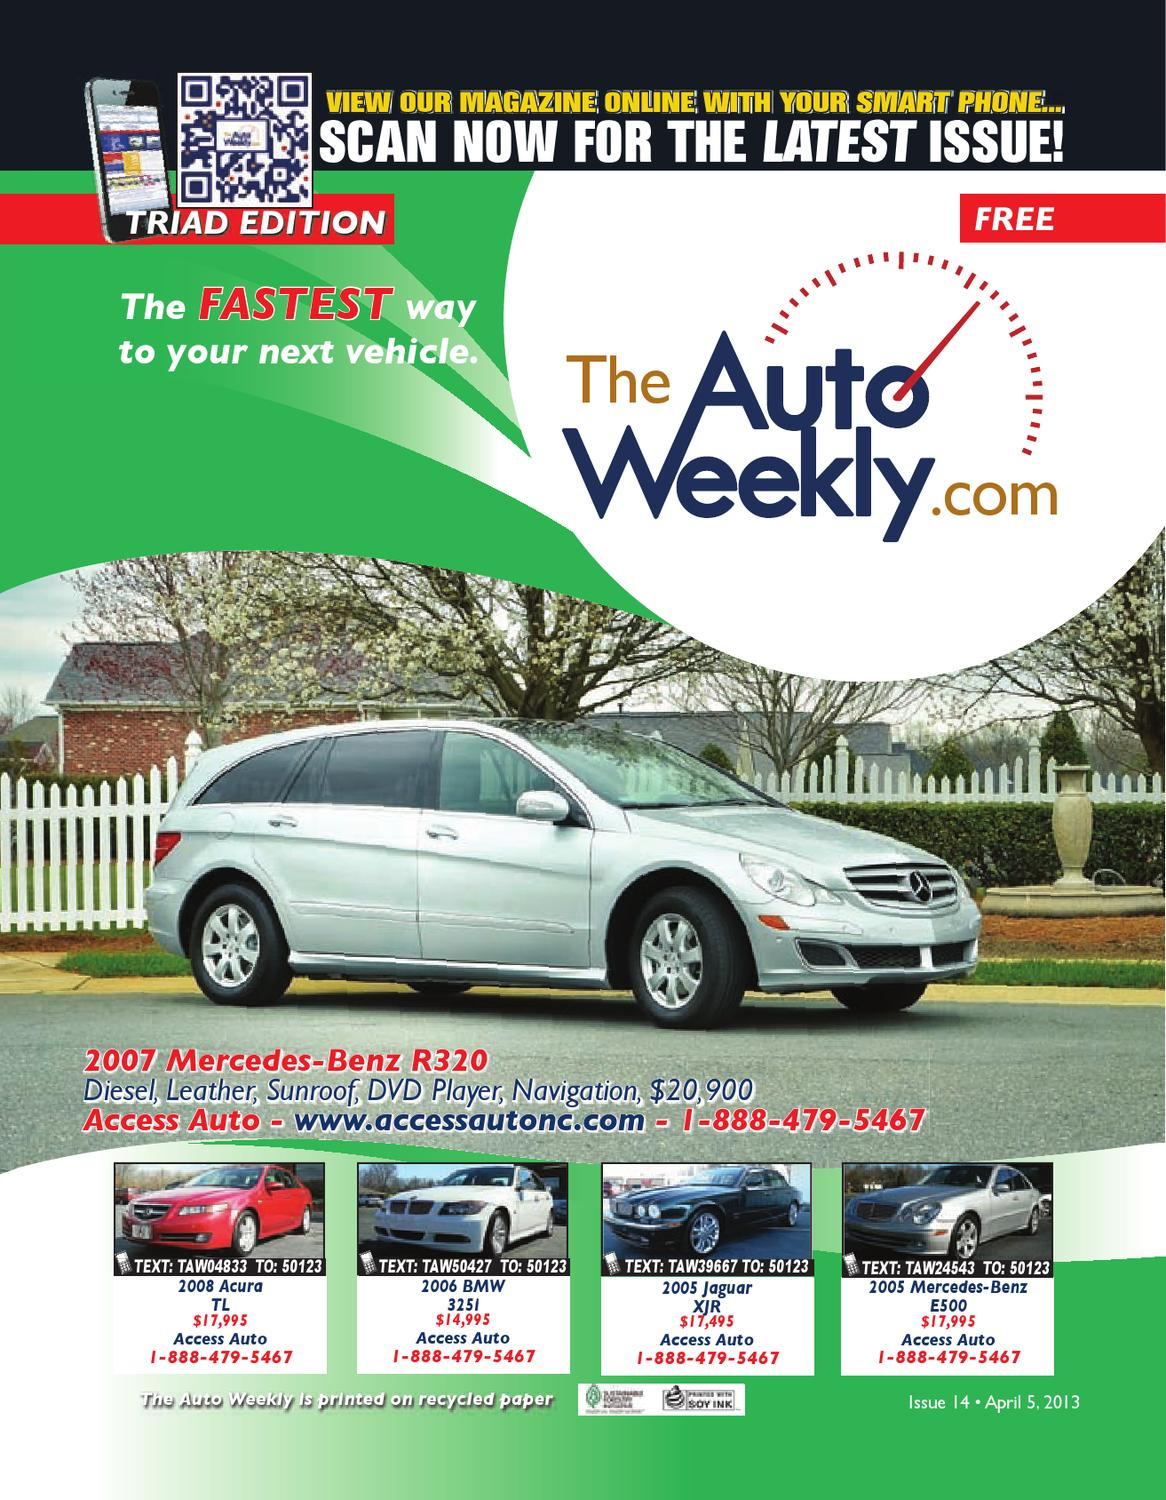 Issue 1314b Triad Edition The Auto Weekly by The Auto Weekly